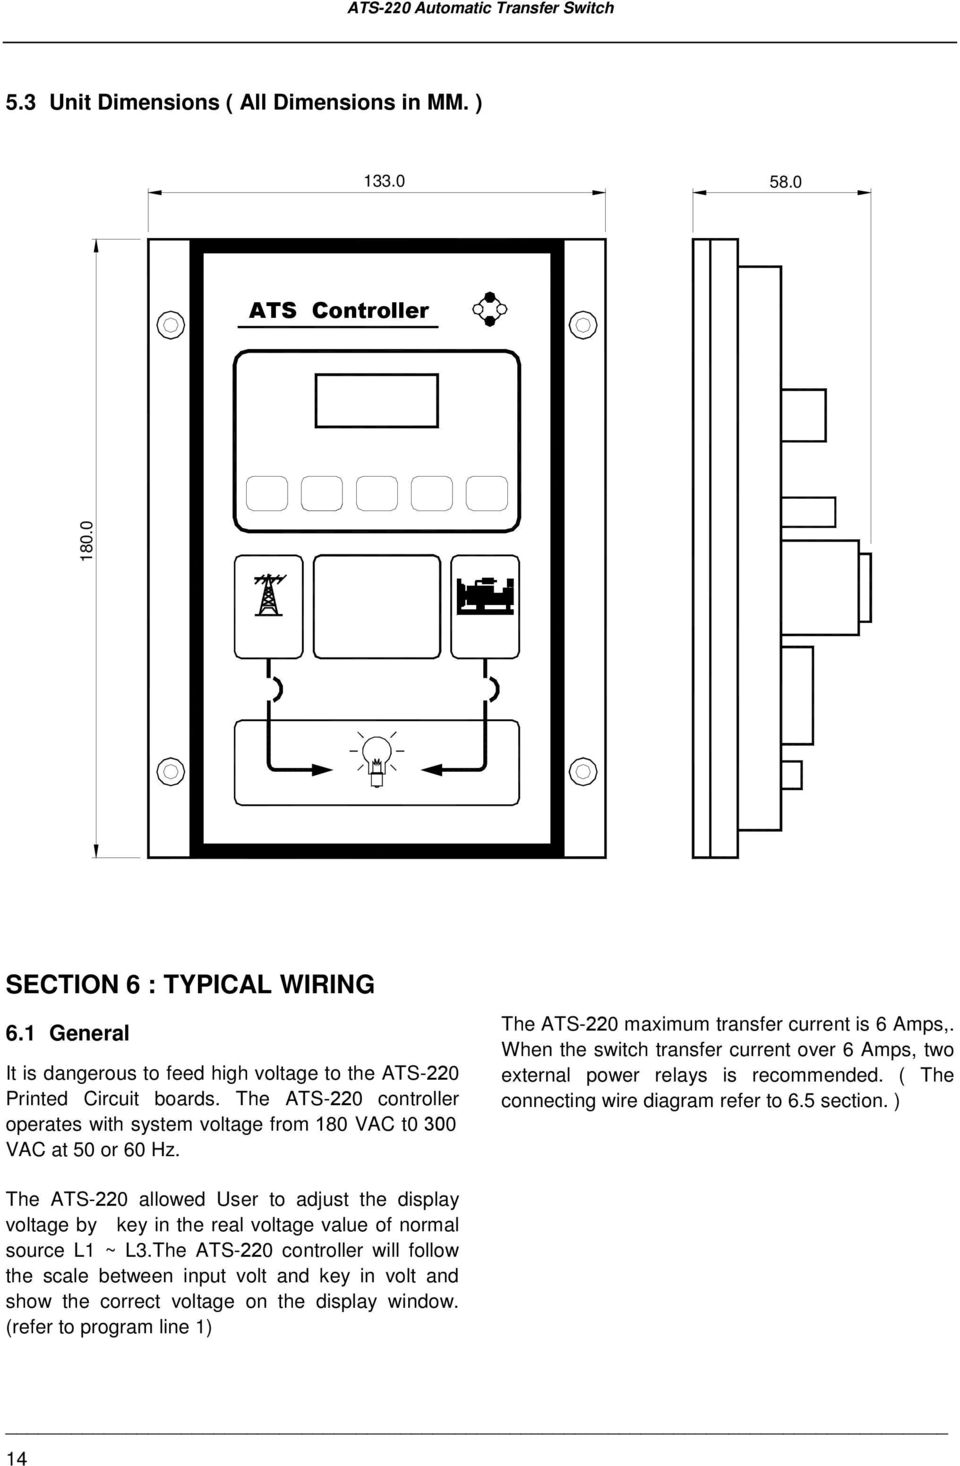 The ATS-220 maximum transfer current is 6 Amps,. When the switch transfer current over 6 Amps, two external power relays is recommended. ( The connecting wire diagram refer to 6.5 section.